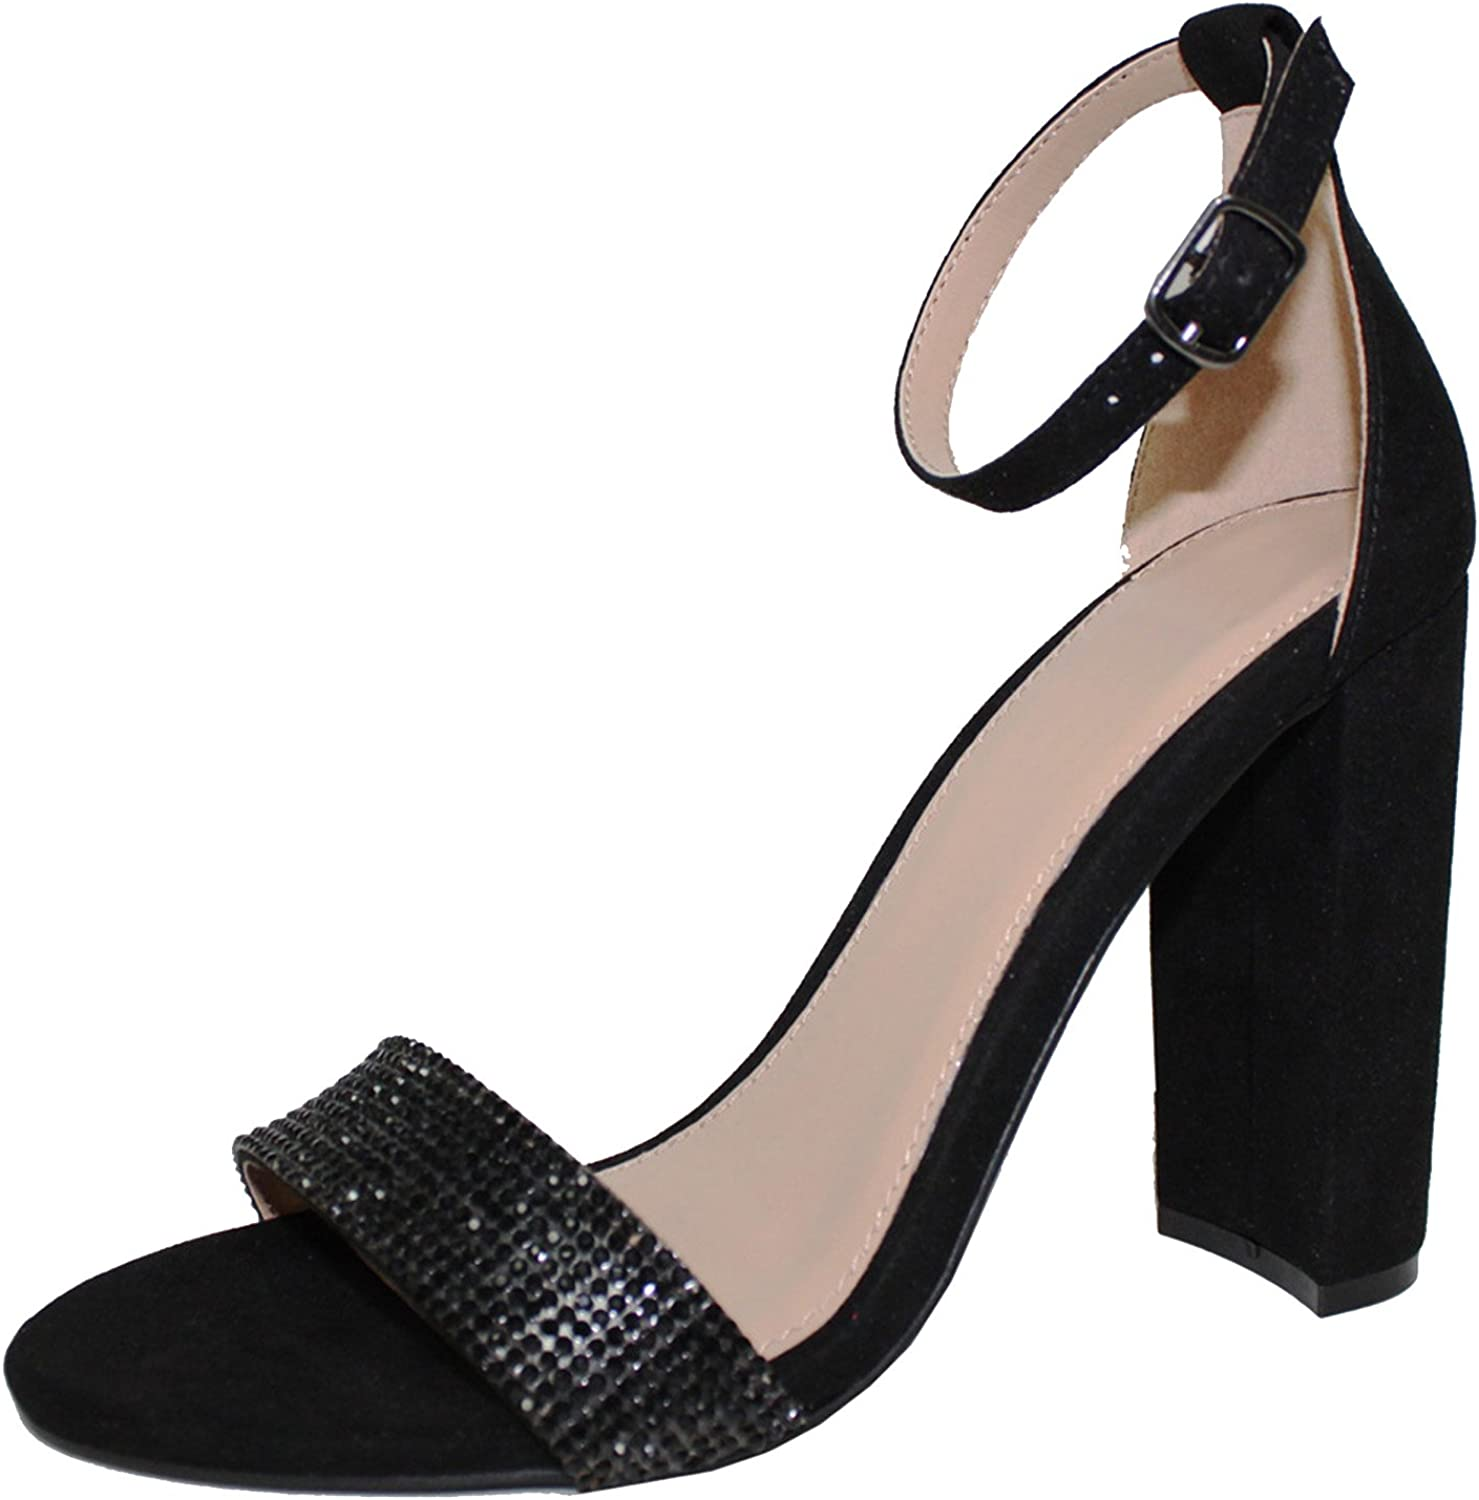 Cambridge Select Women's Open Toe Rhinestone High quality Crystal Ankle Many popular brands Strap